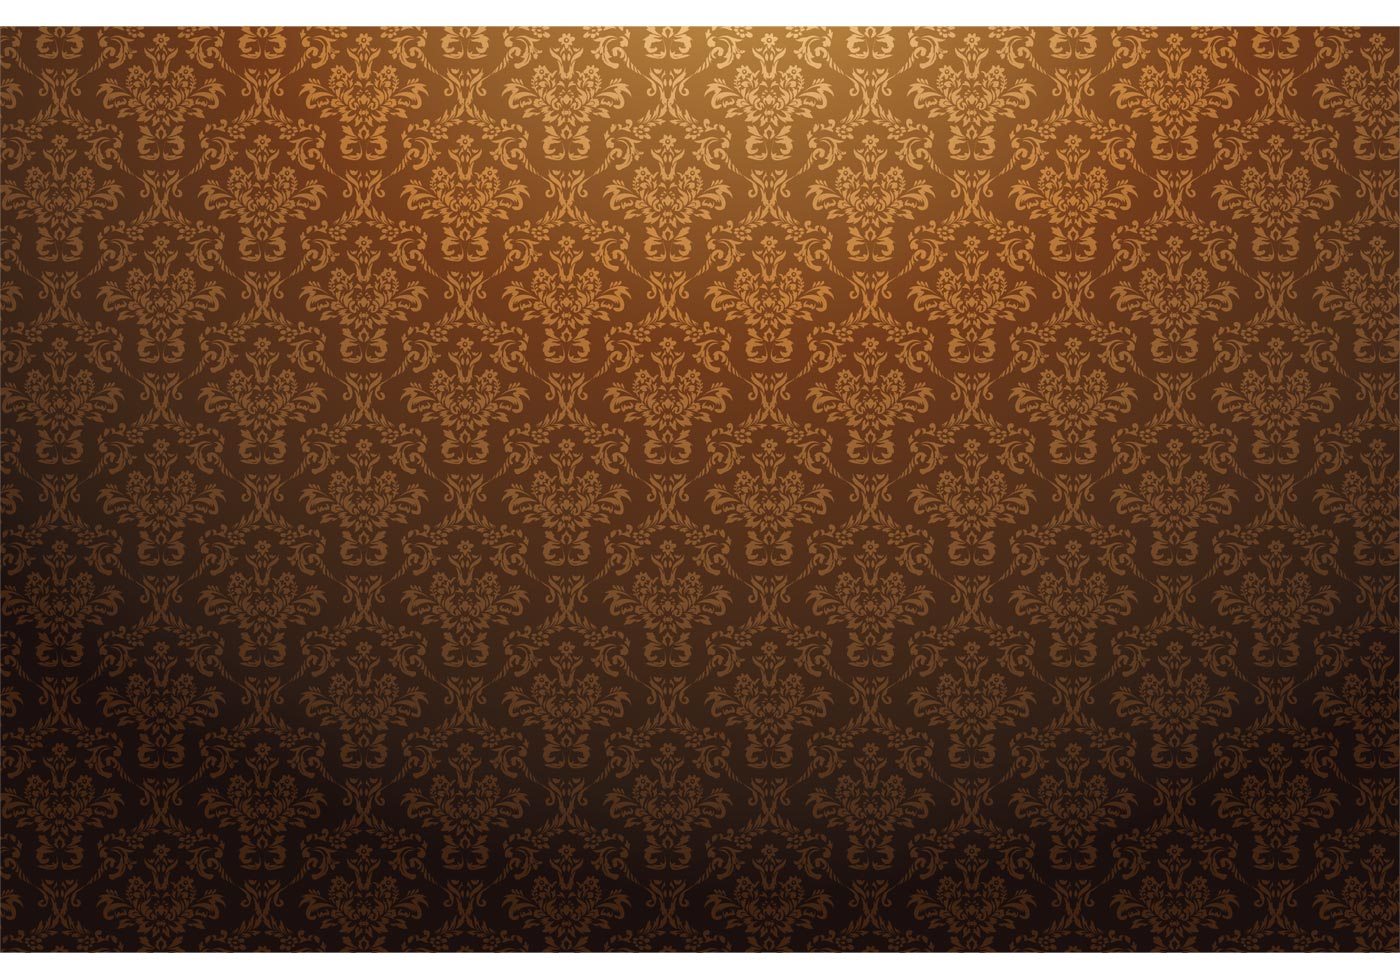 Design Backgrounds Free Download